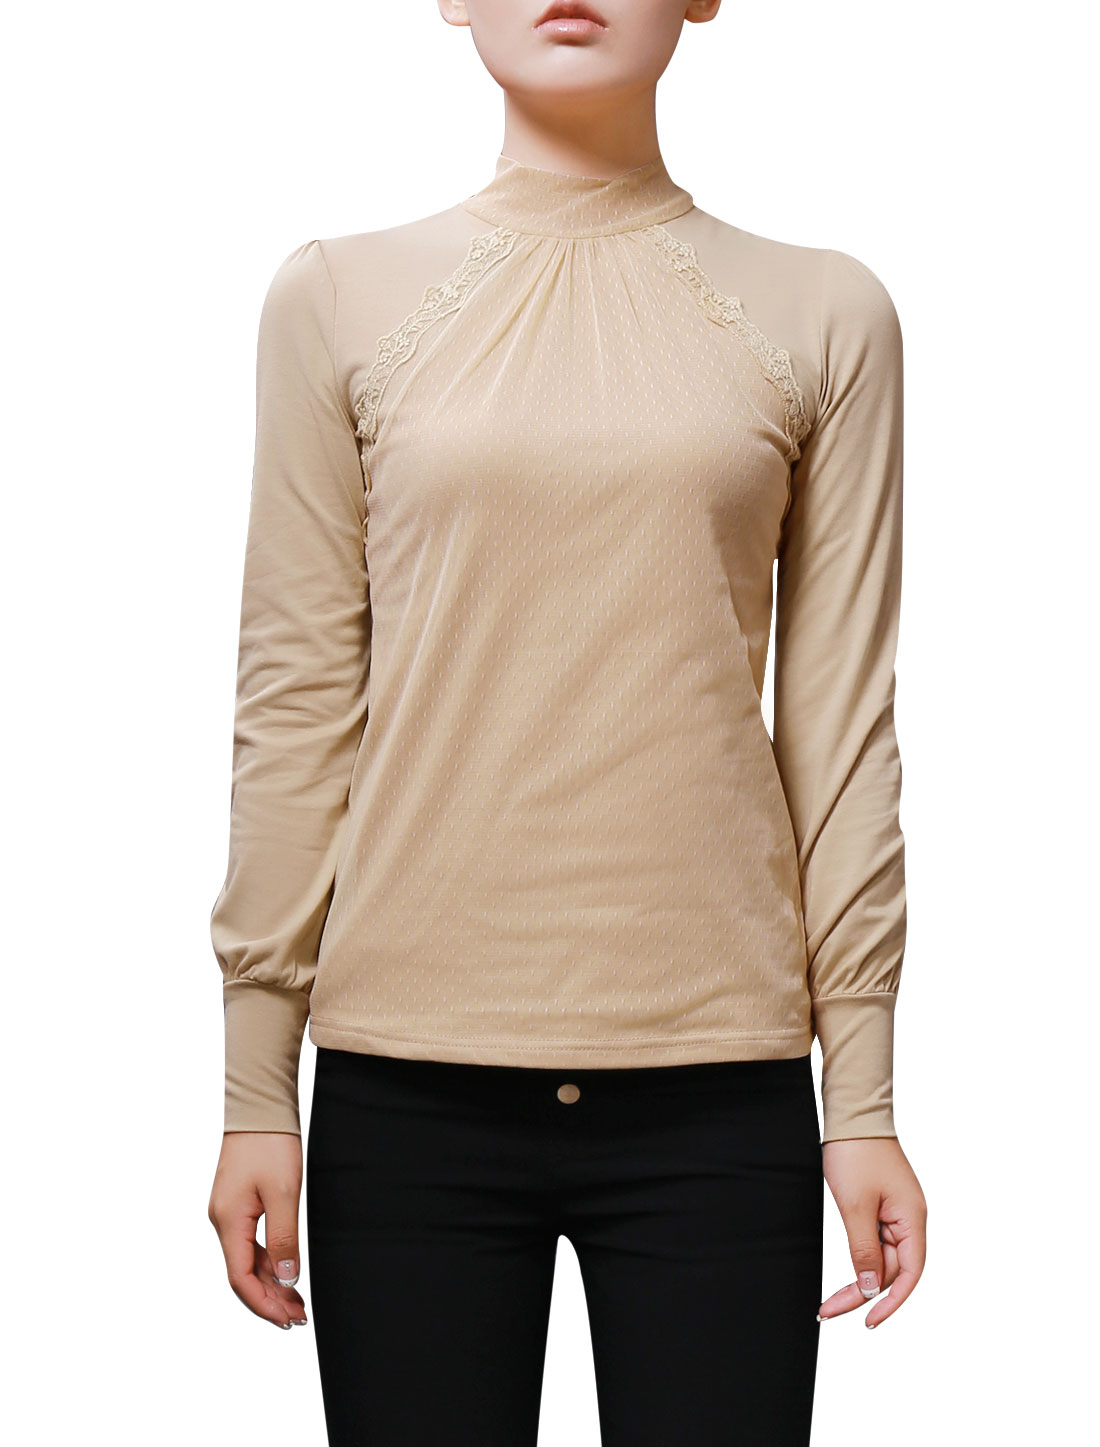 Woman New Fashion Mock Neck Long Bracelet Sleeve Beige Tops M